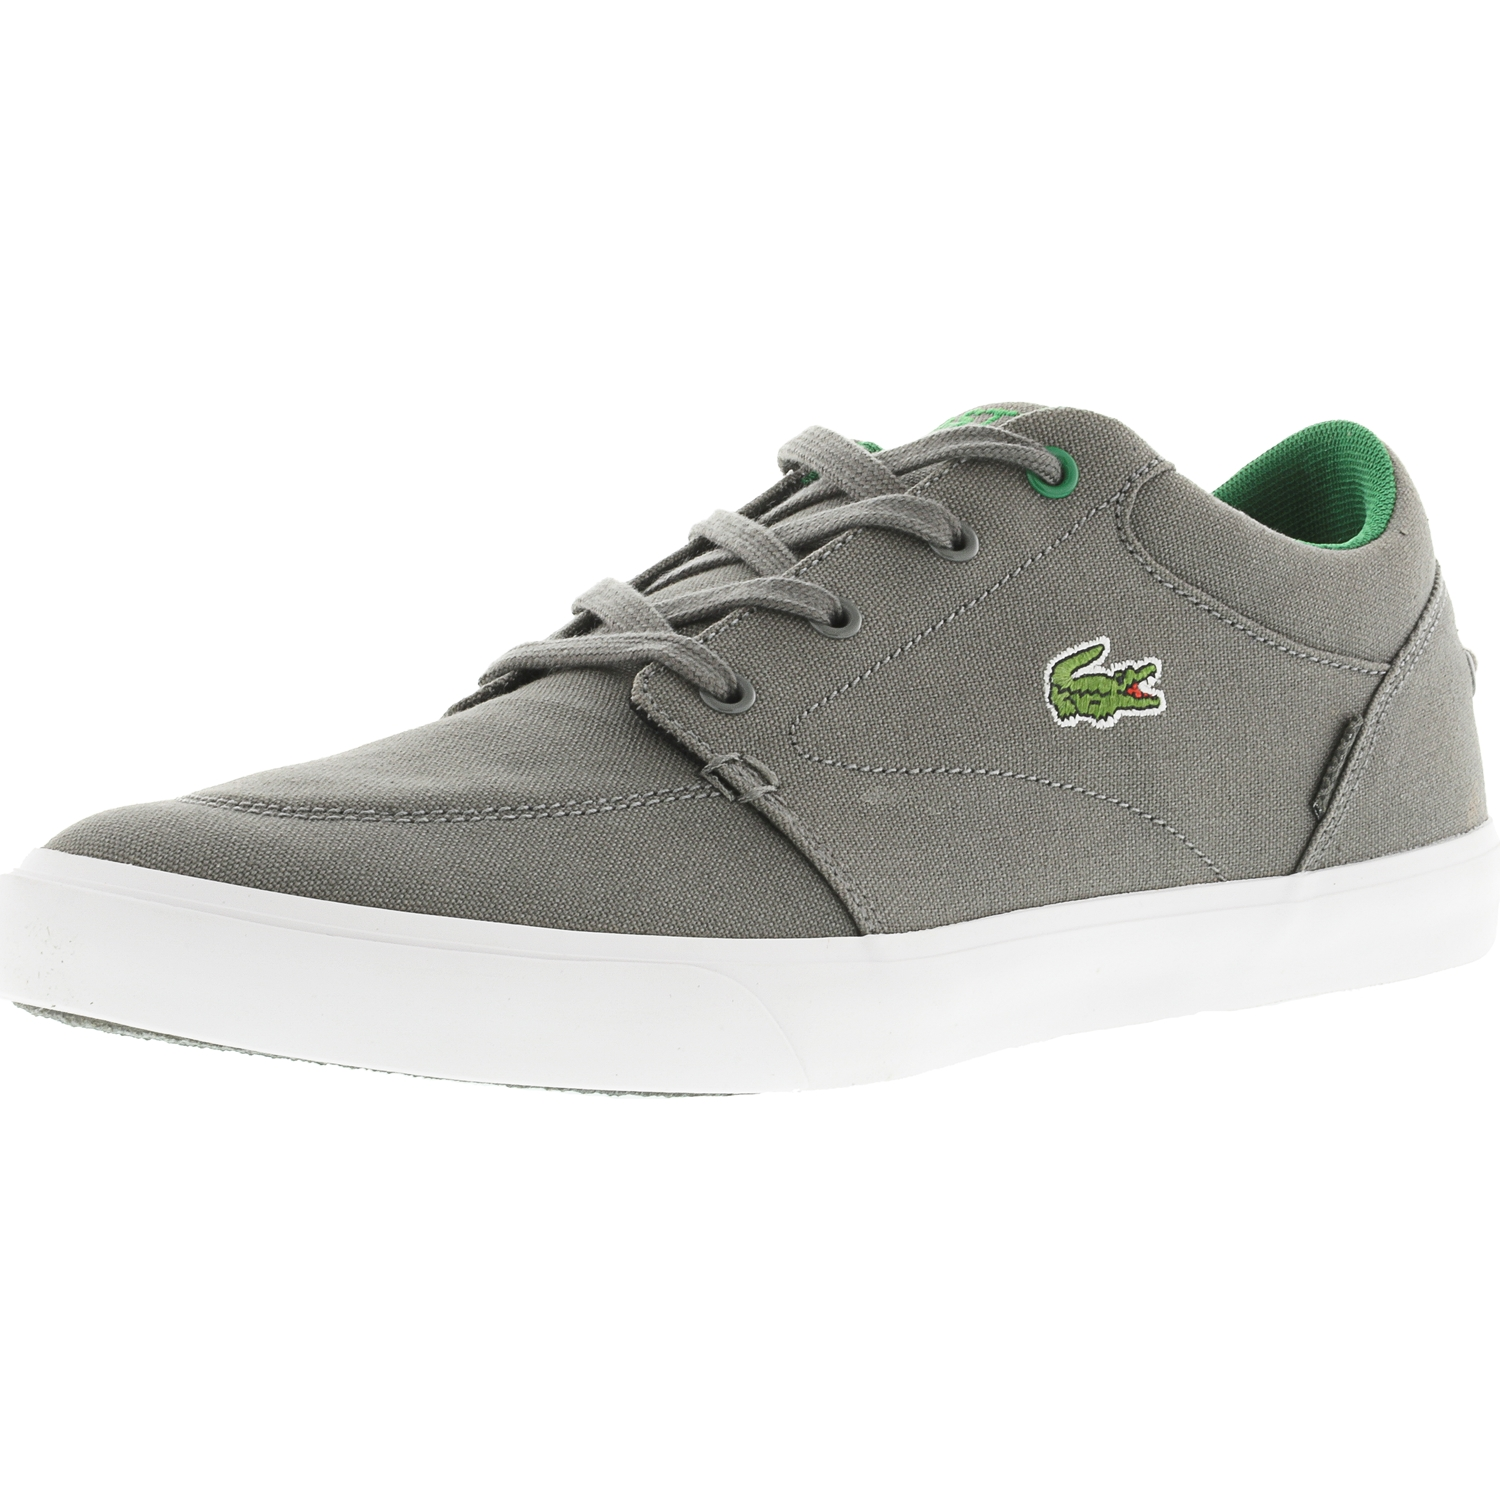 lacoste gray shoes